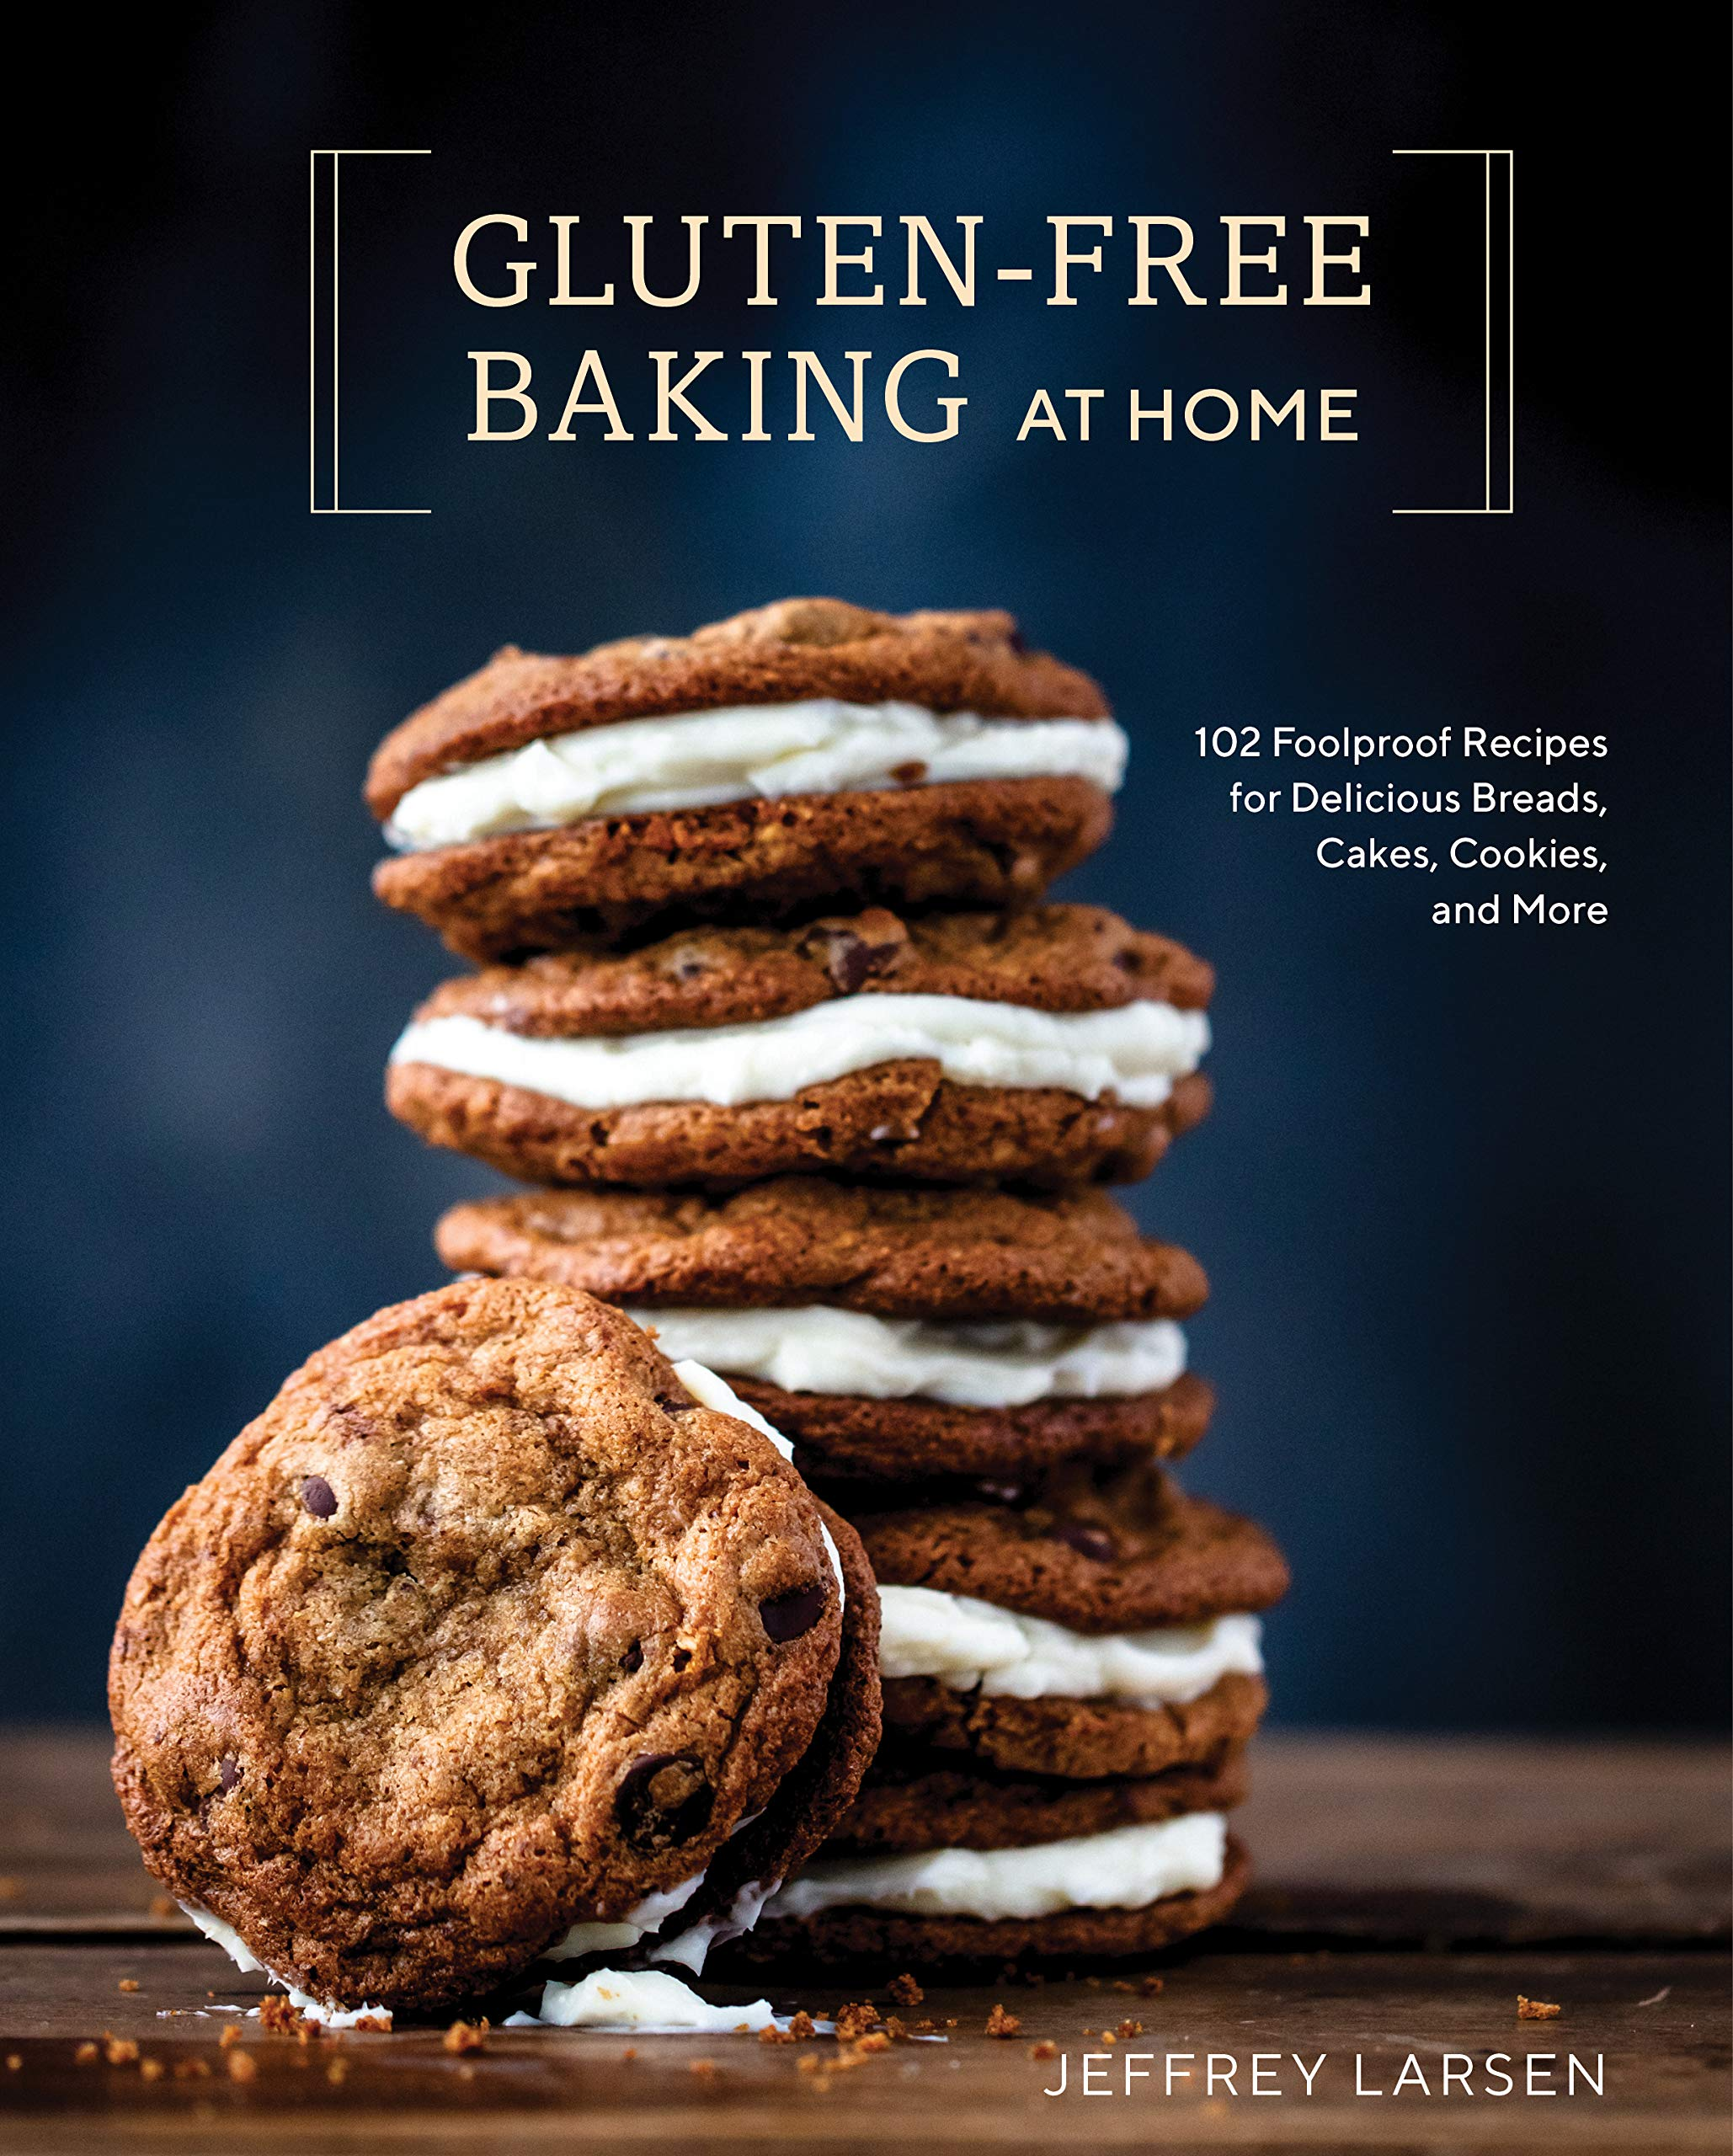 Gluten-Free Baking At Home: 102 Foolproof Recipes for Delicious Breads, Cakes, Cookies, and More by Ten Speed Press